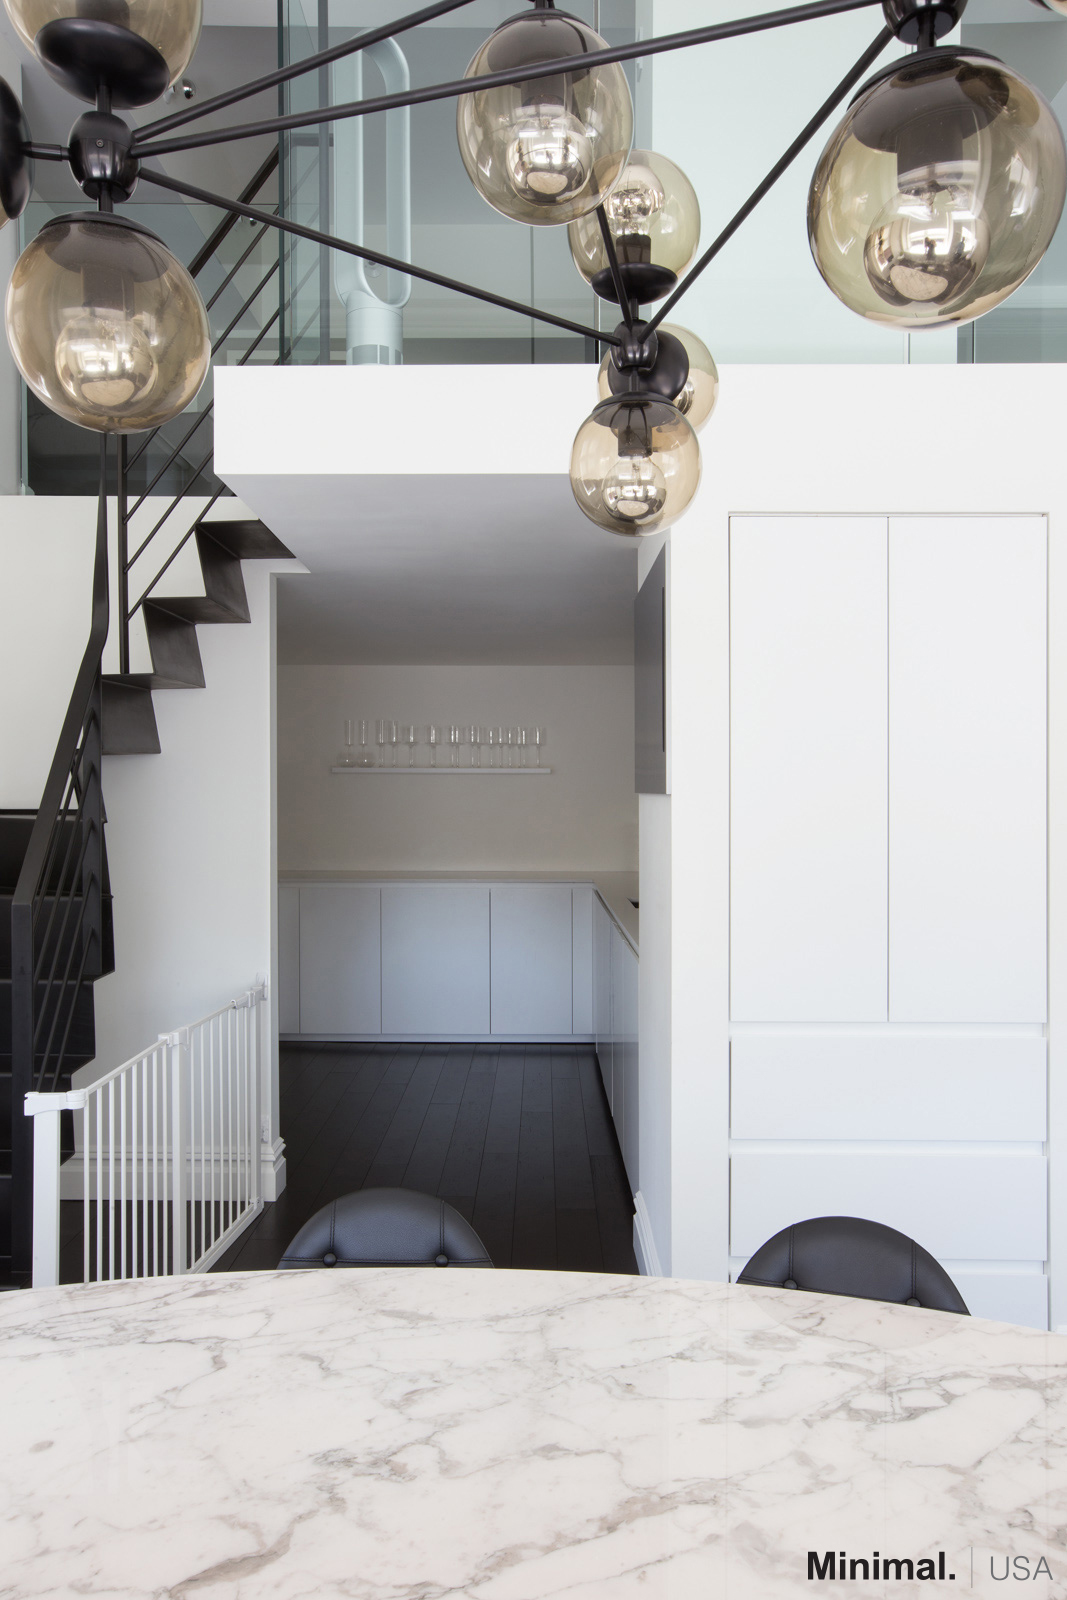 Moving to the left, passing the modern living room, there is the kitchens entrance with an adjacent pantry cleverly embedded in the wall, becoming an integral part of the column.